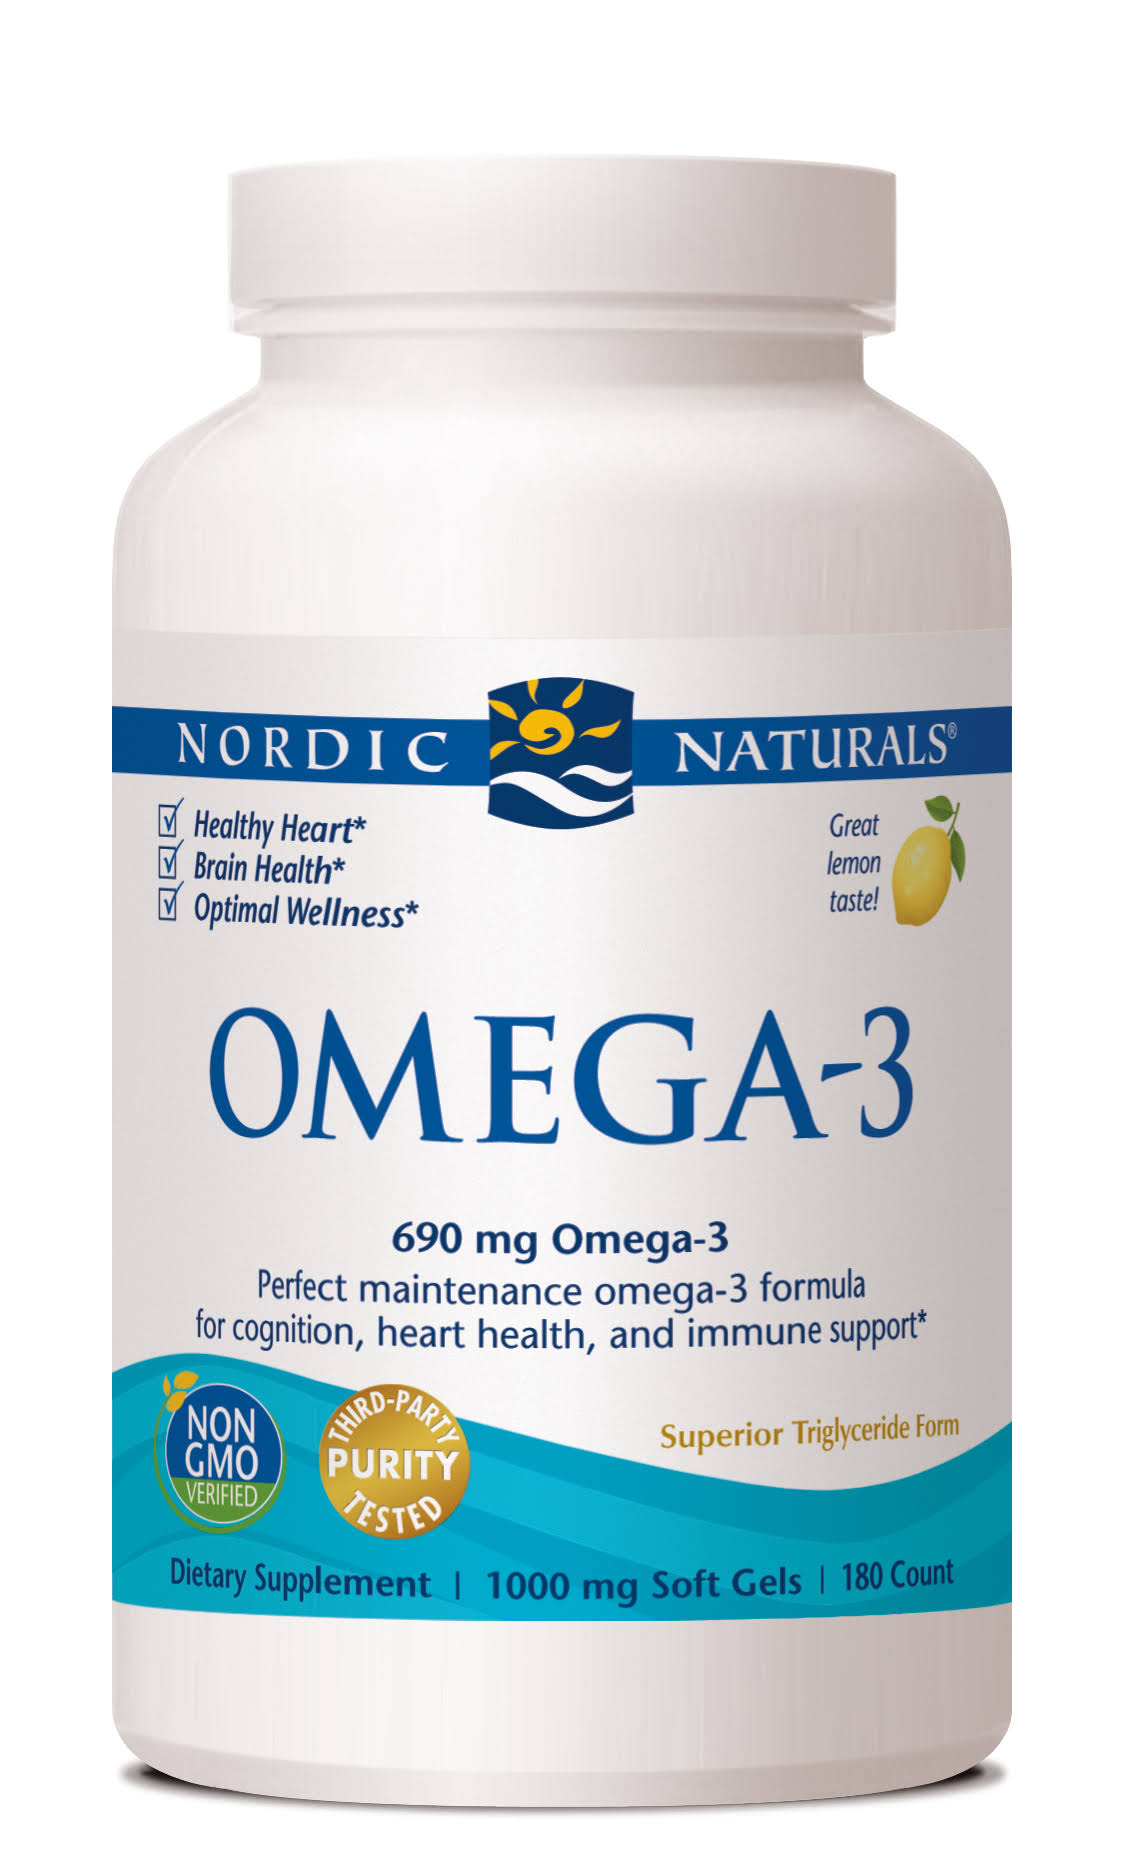 Nordic Naturals Omega 3 Purified Fish Oil with Lemon - 180 Soft Gels